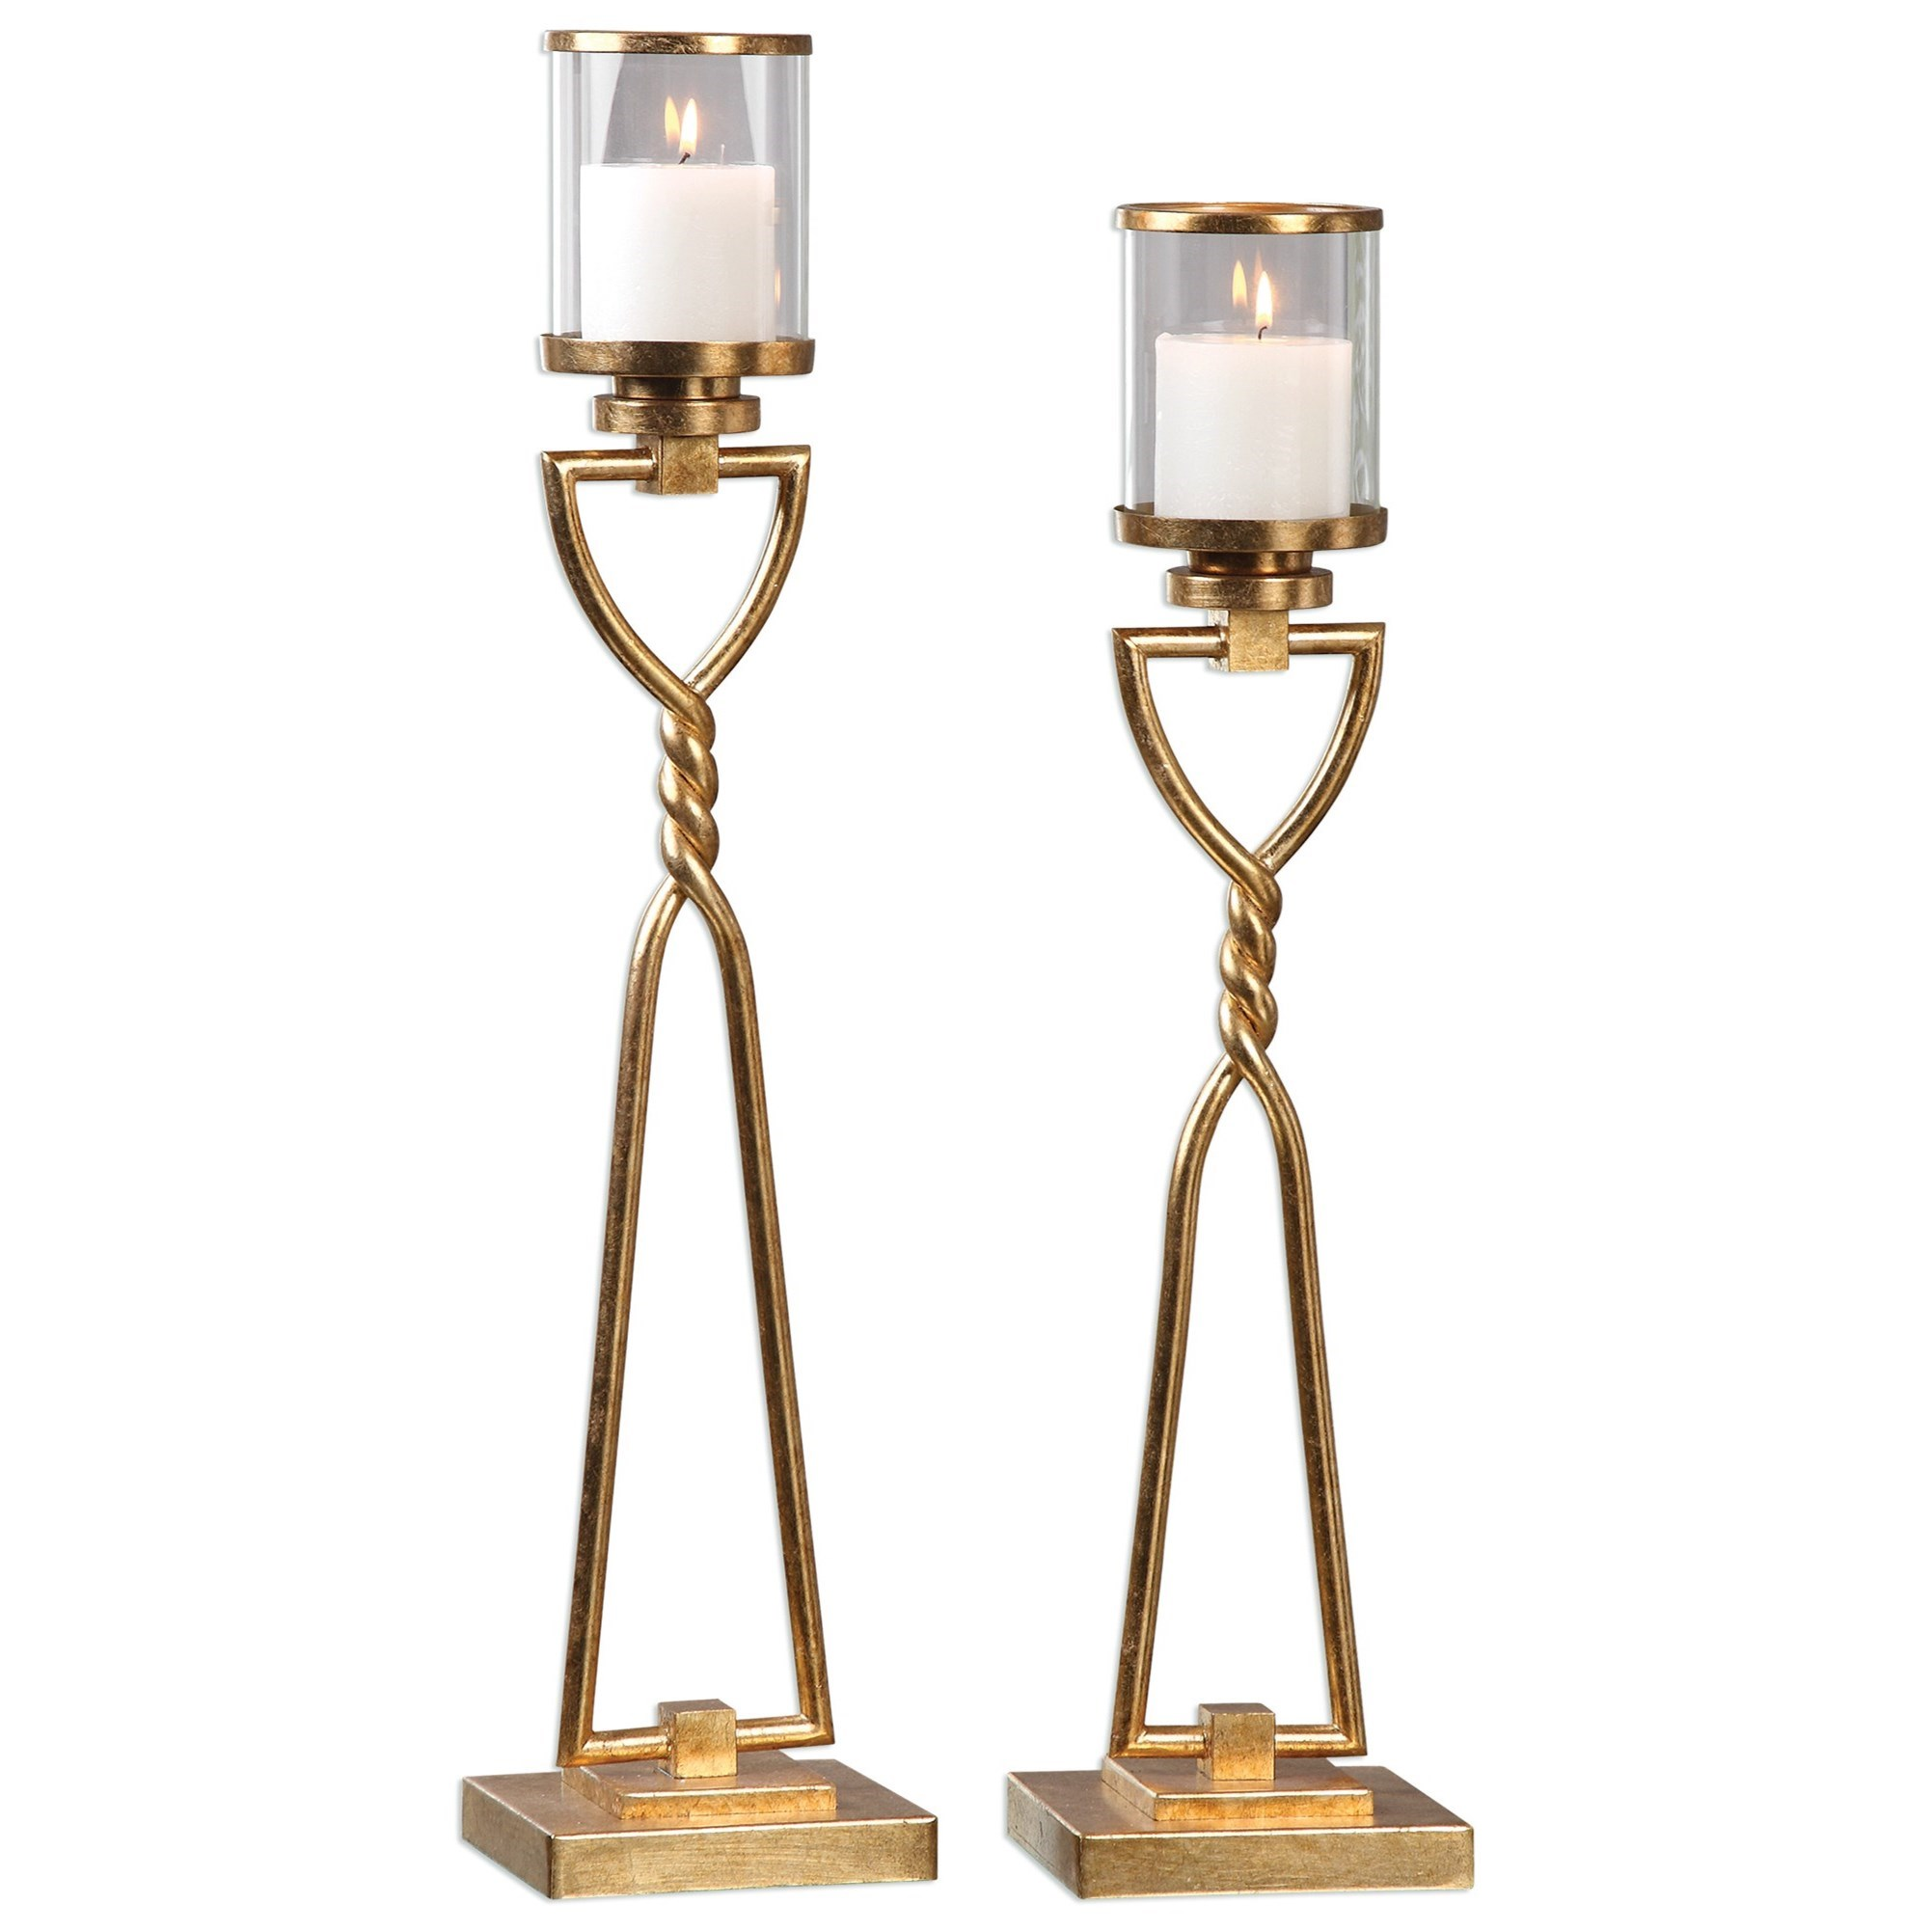 Uttermost Accessories Susana Candleholders (Set of 2) - Item Number: 20182